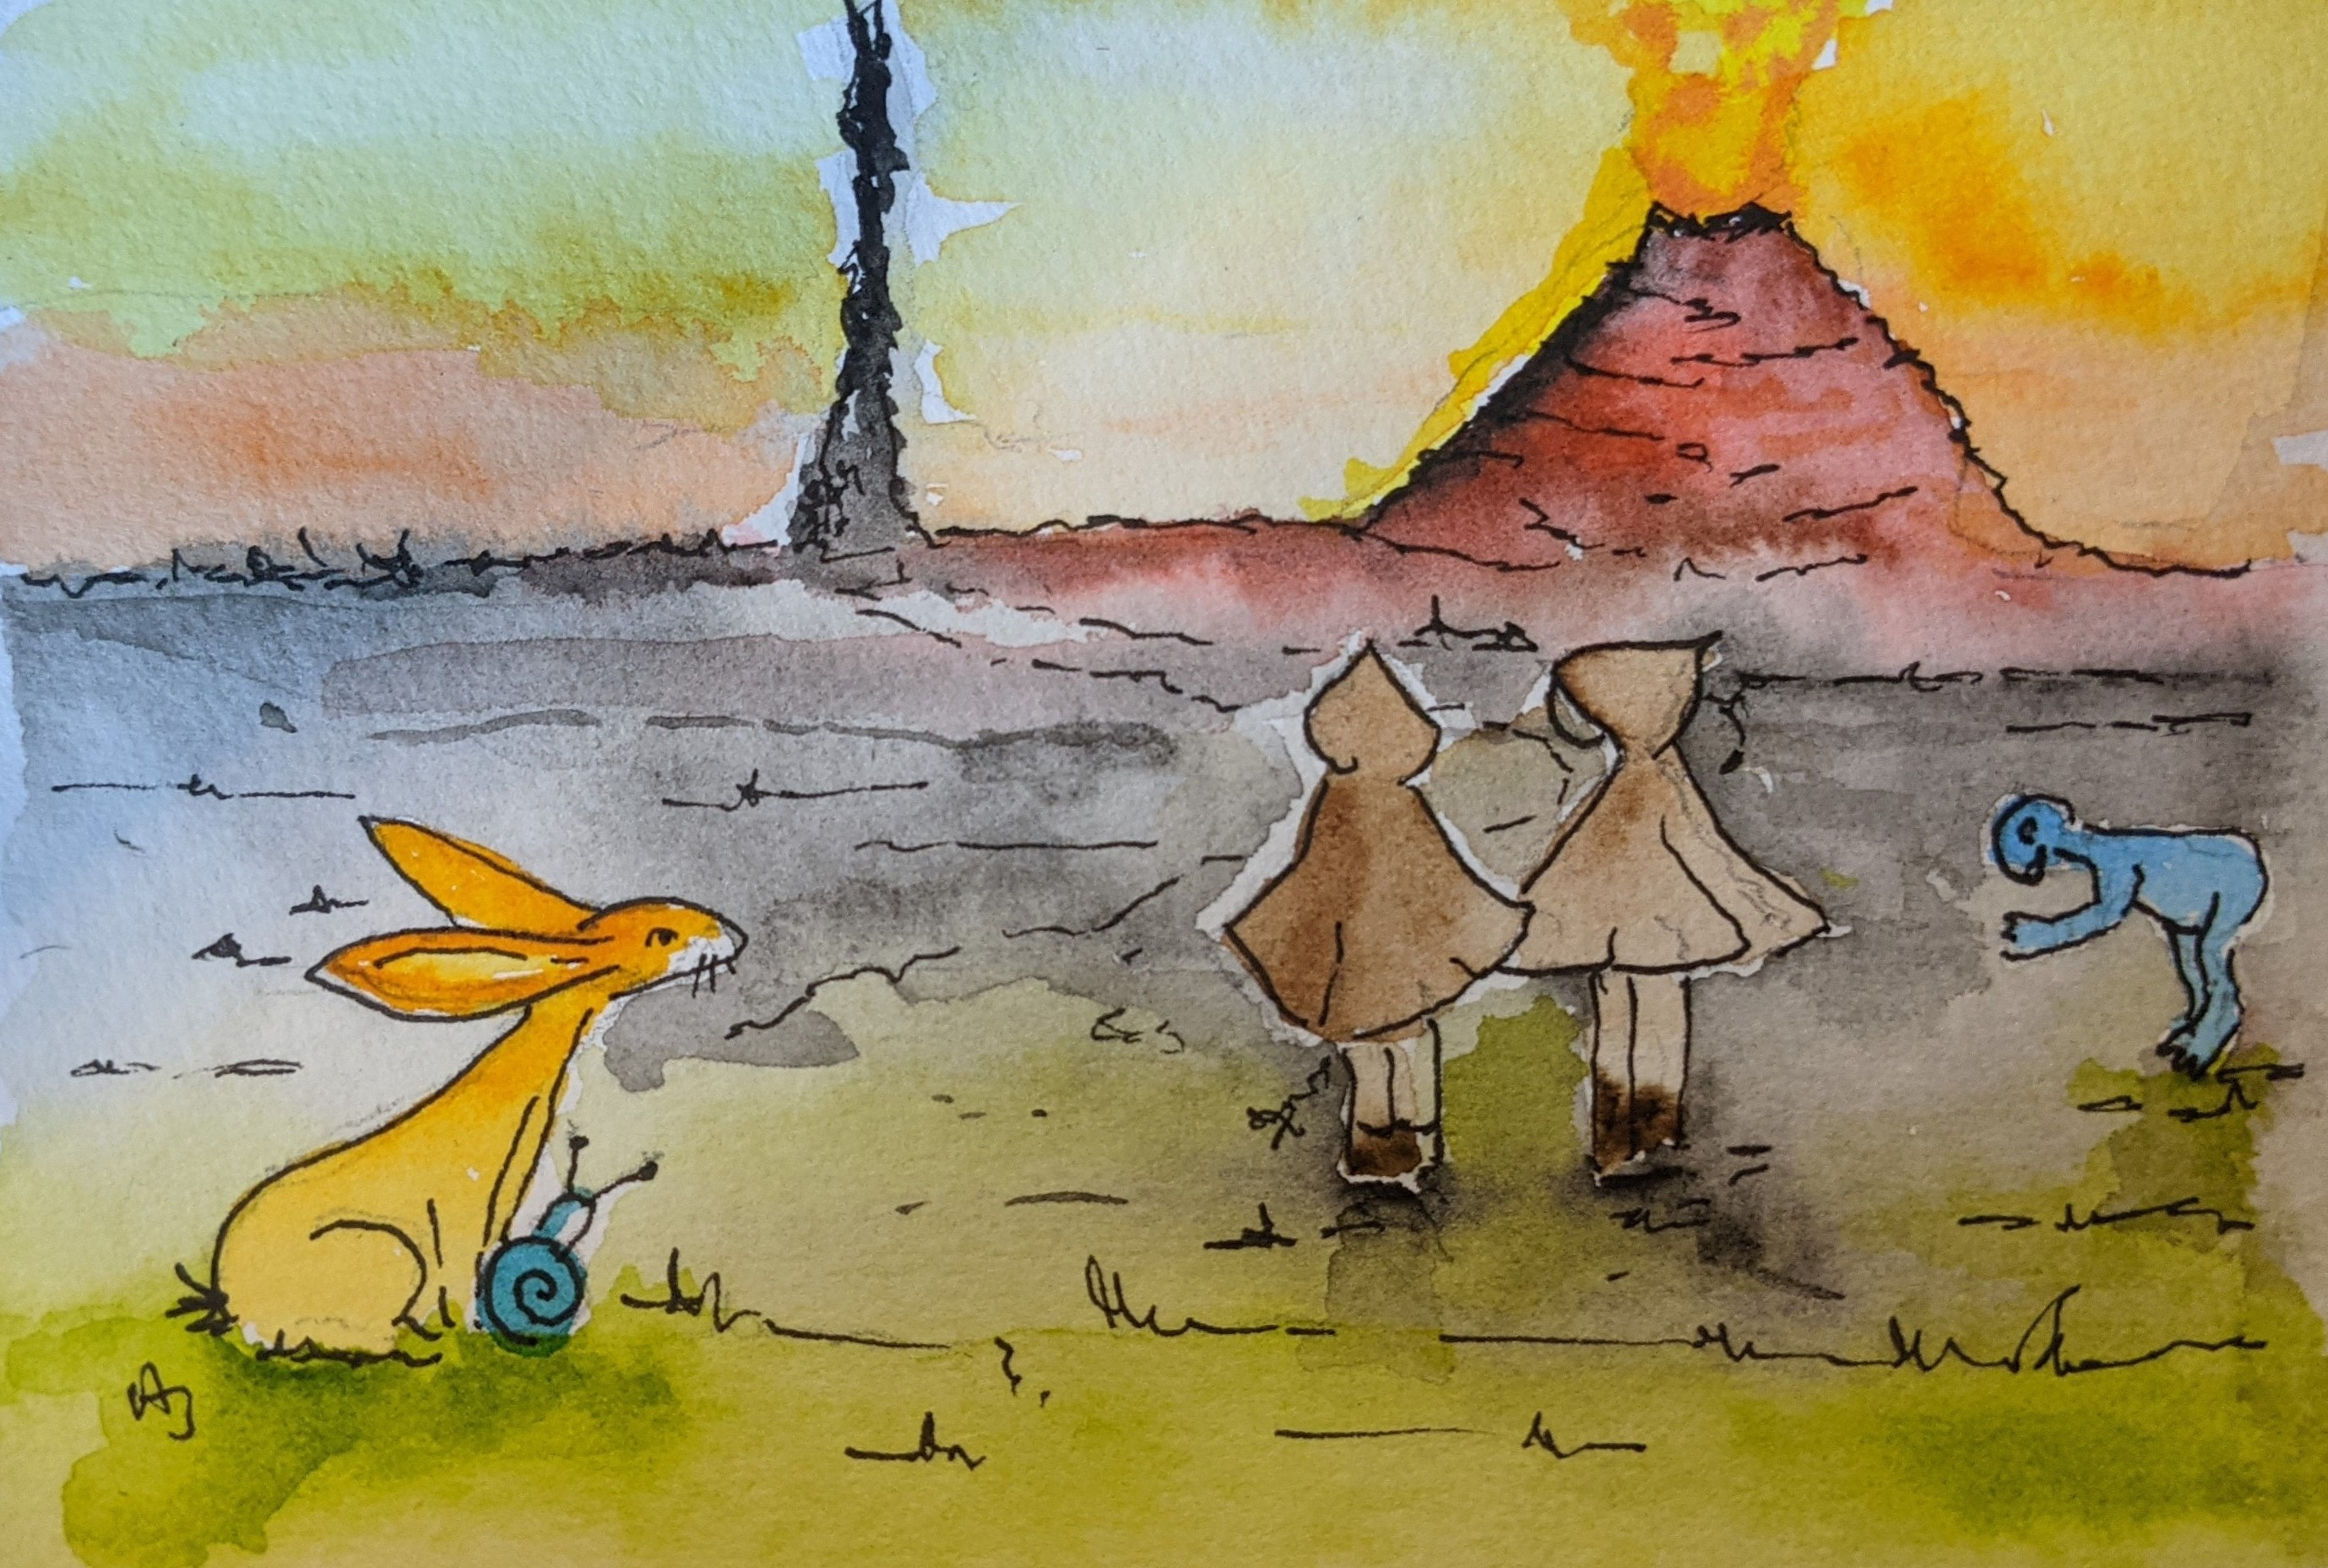 Day 20 The Lord of the Rings